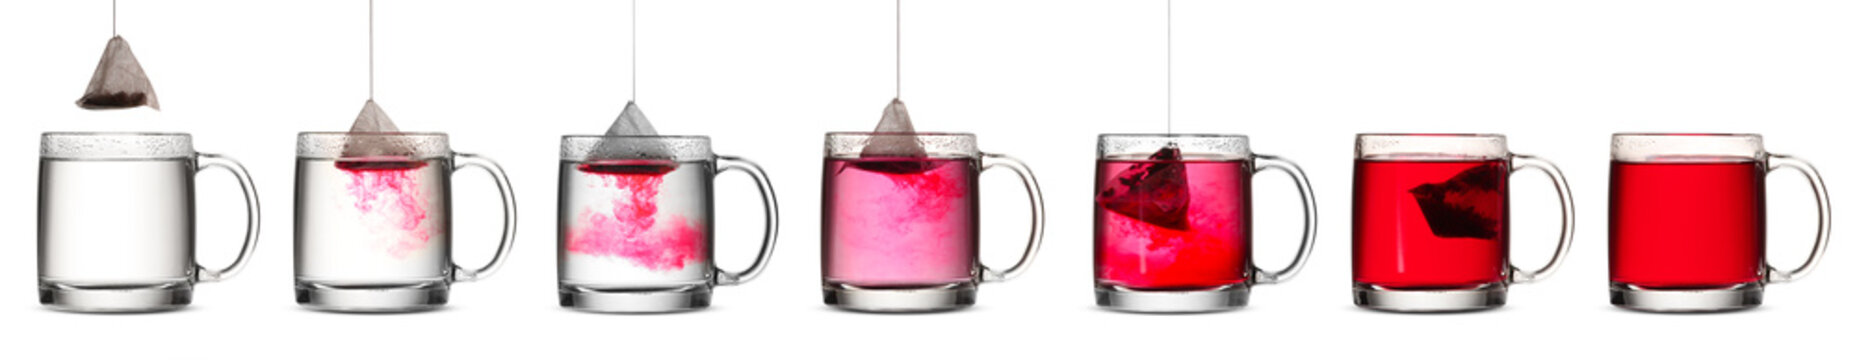 Process of making tea in glass cup on white background